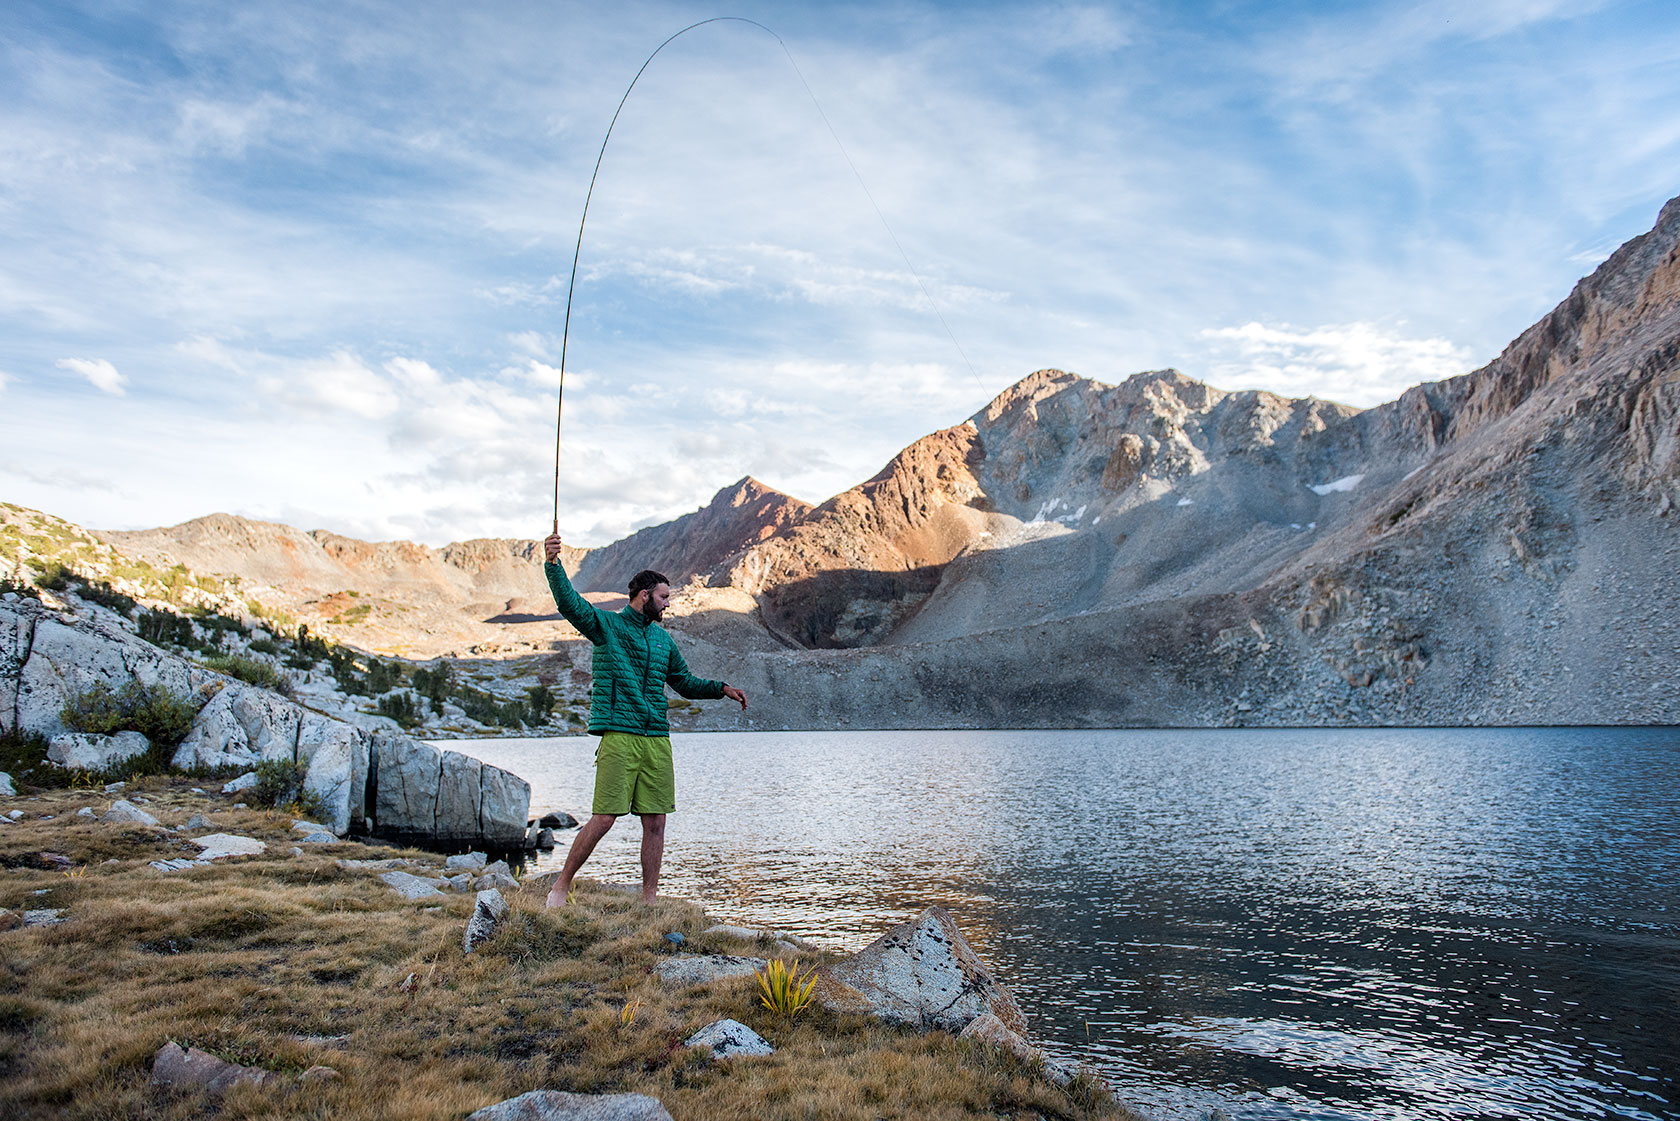 austin-trigg-patagonia-hiking-john-muir-trail-catch-fish-wilderness-california-adventure-outside-camp-sierra-nevada-lifestyle-fly-fishing.jpg